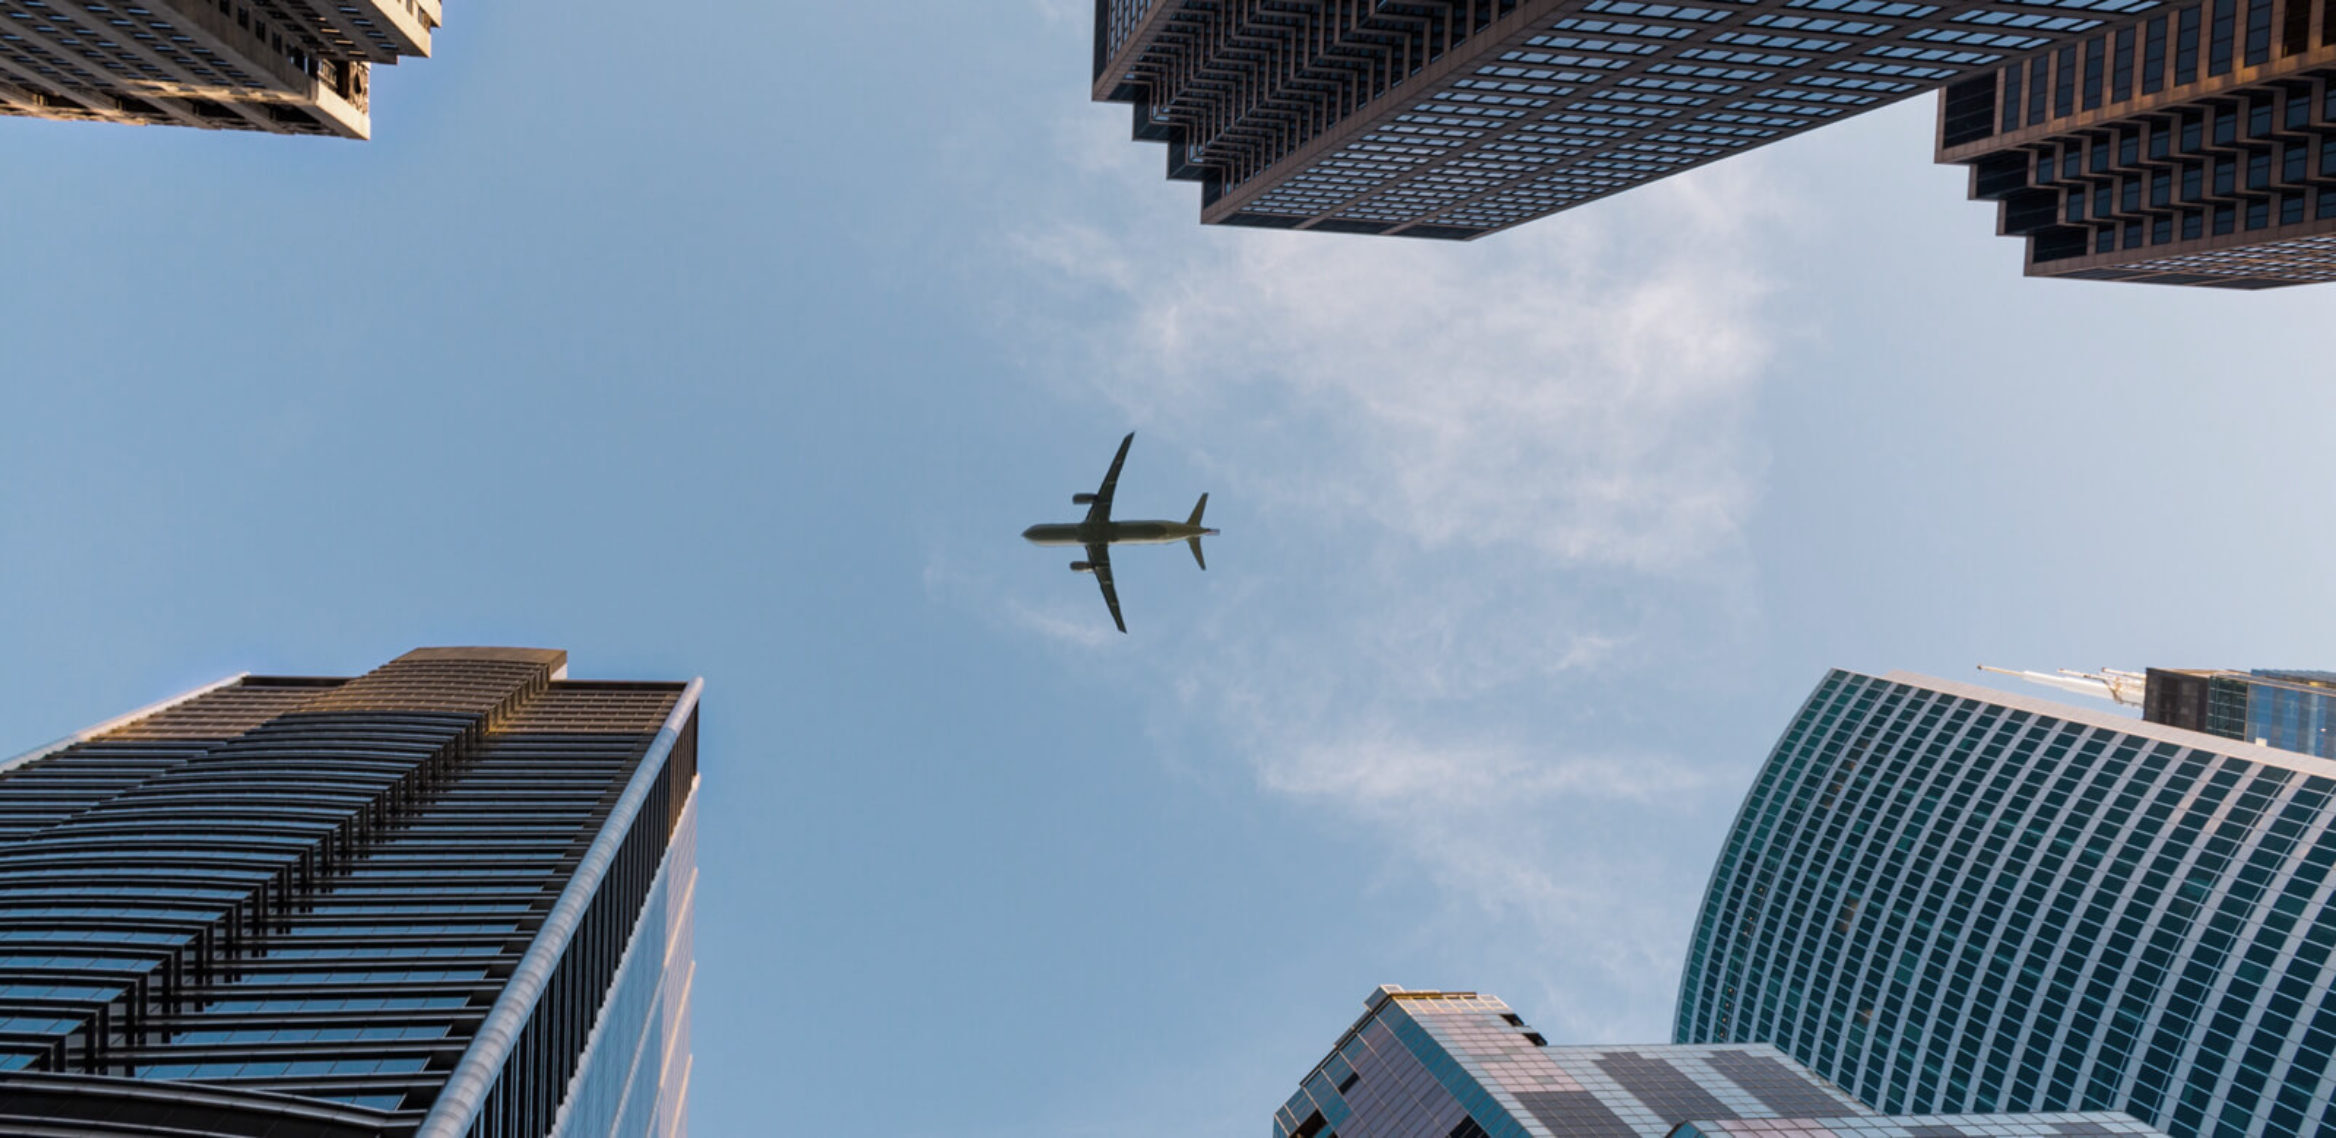 Looking straight up between buildings to see an airplane flying overhead.